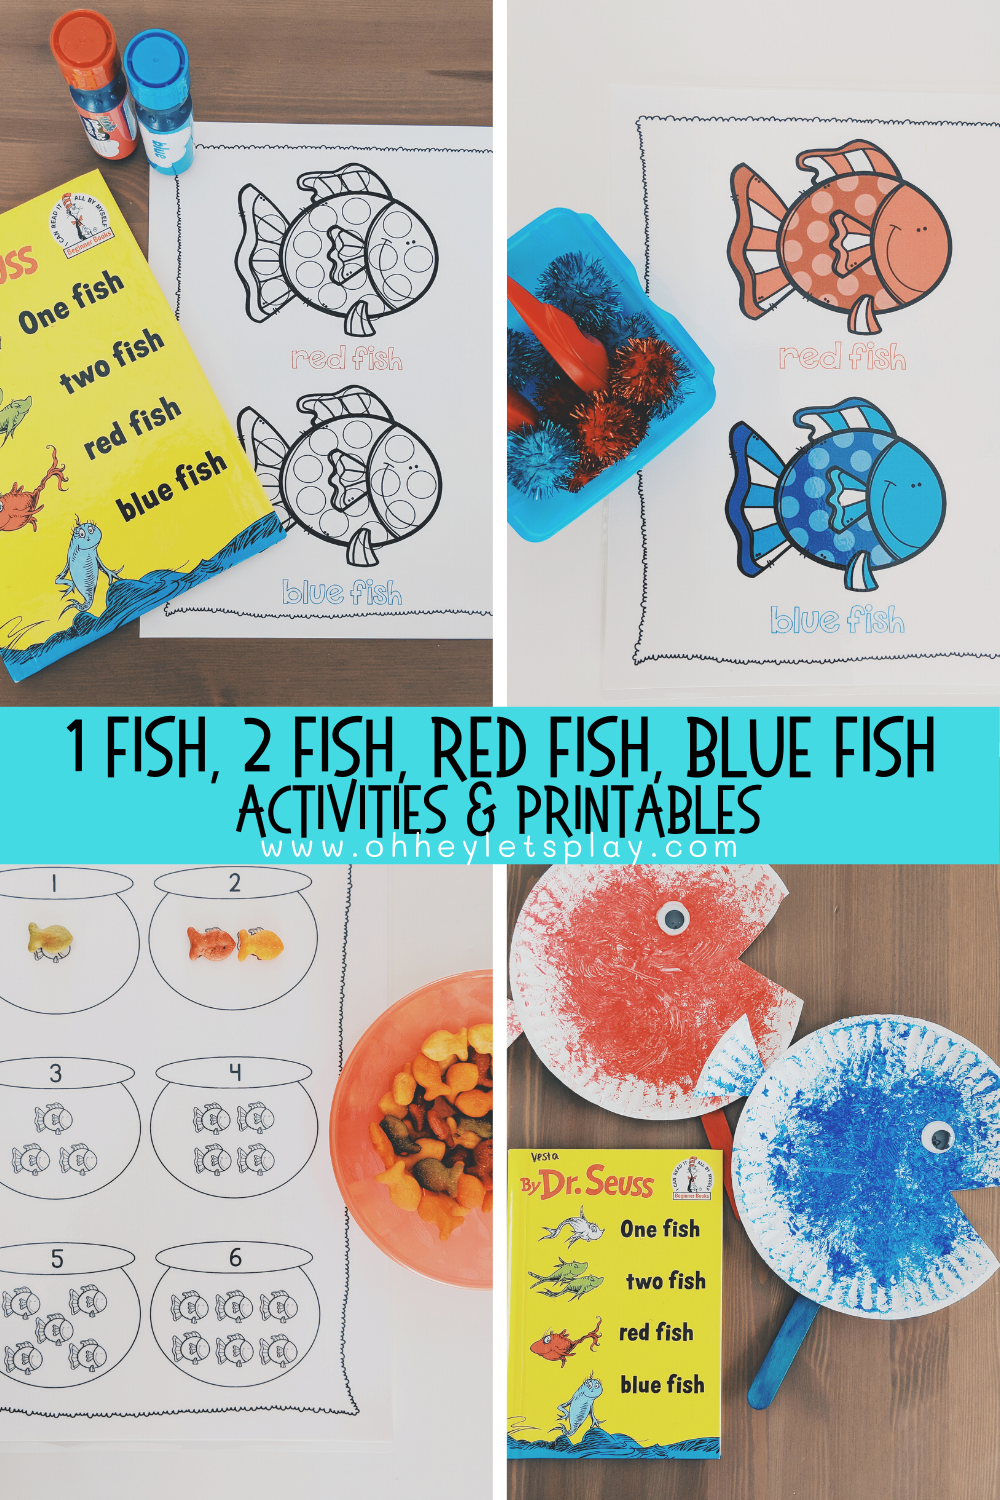 - Red Fish, Blue Fish Dr. Seuss Activities & Printables — Moments